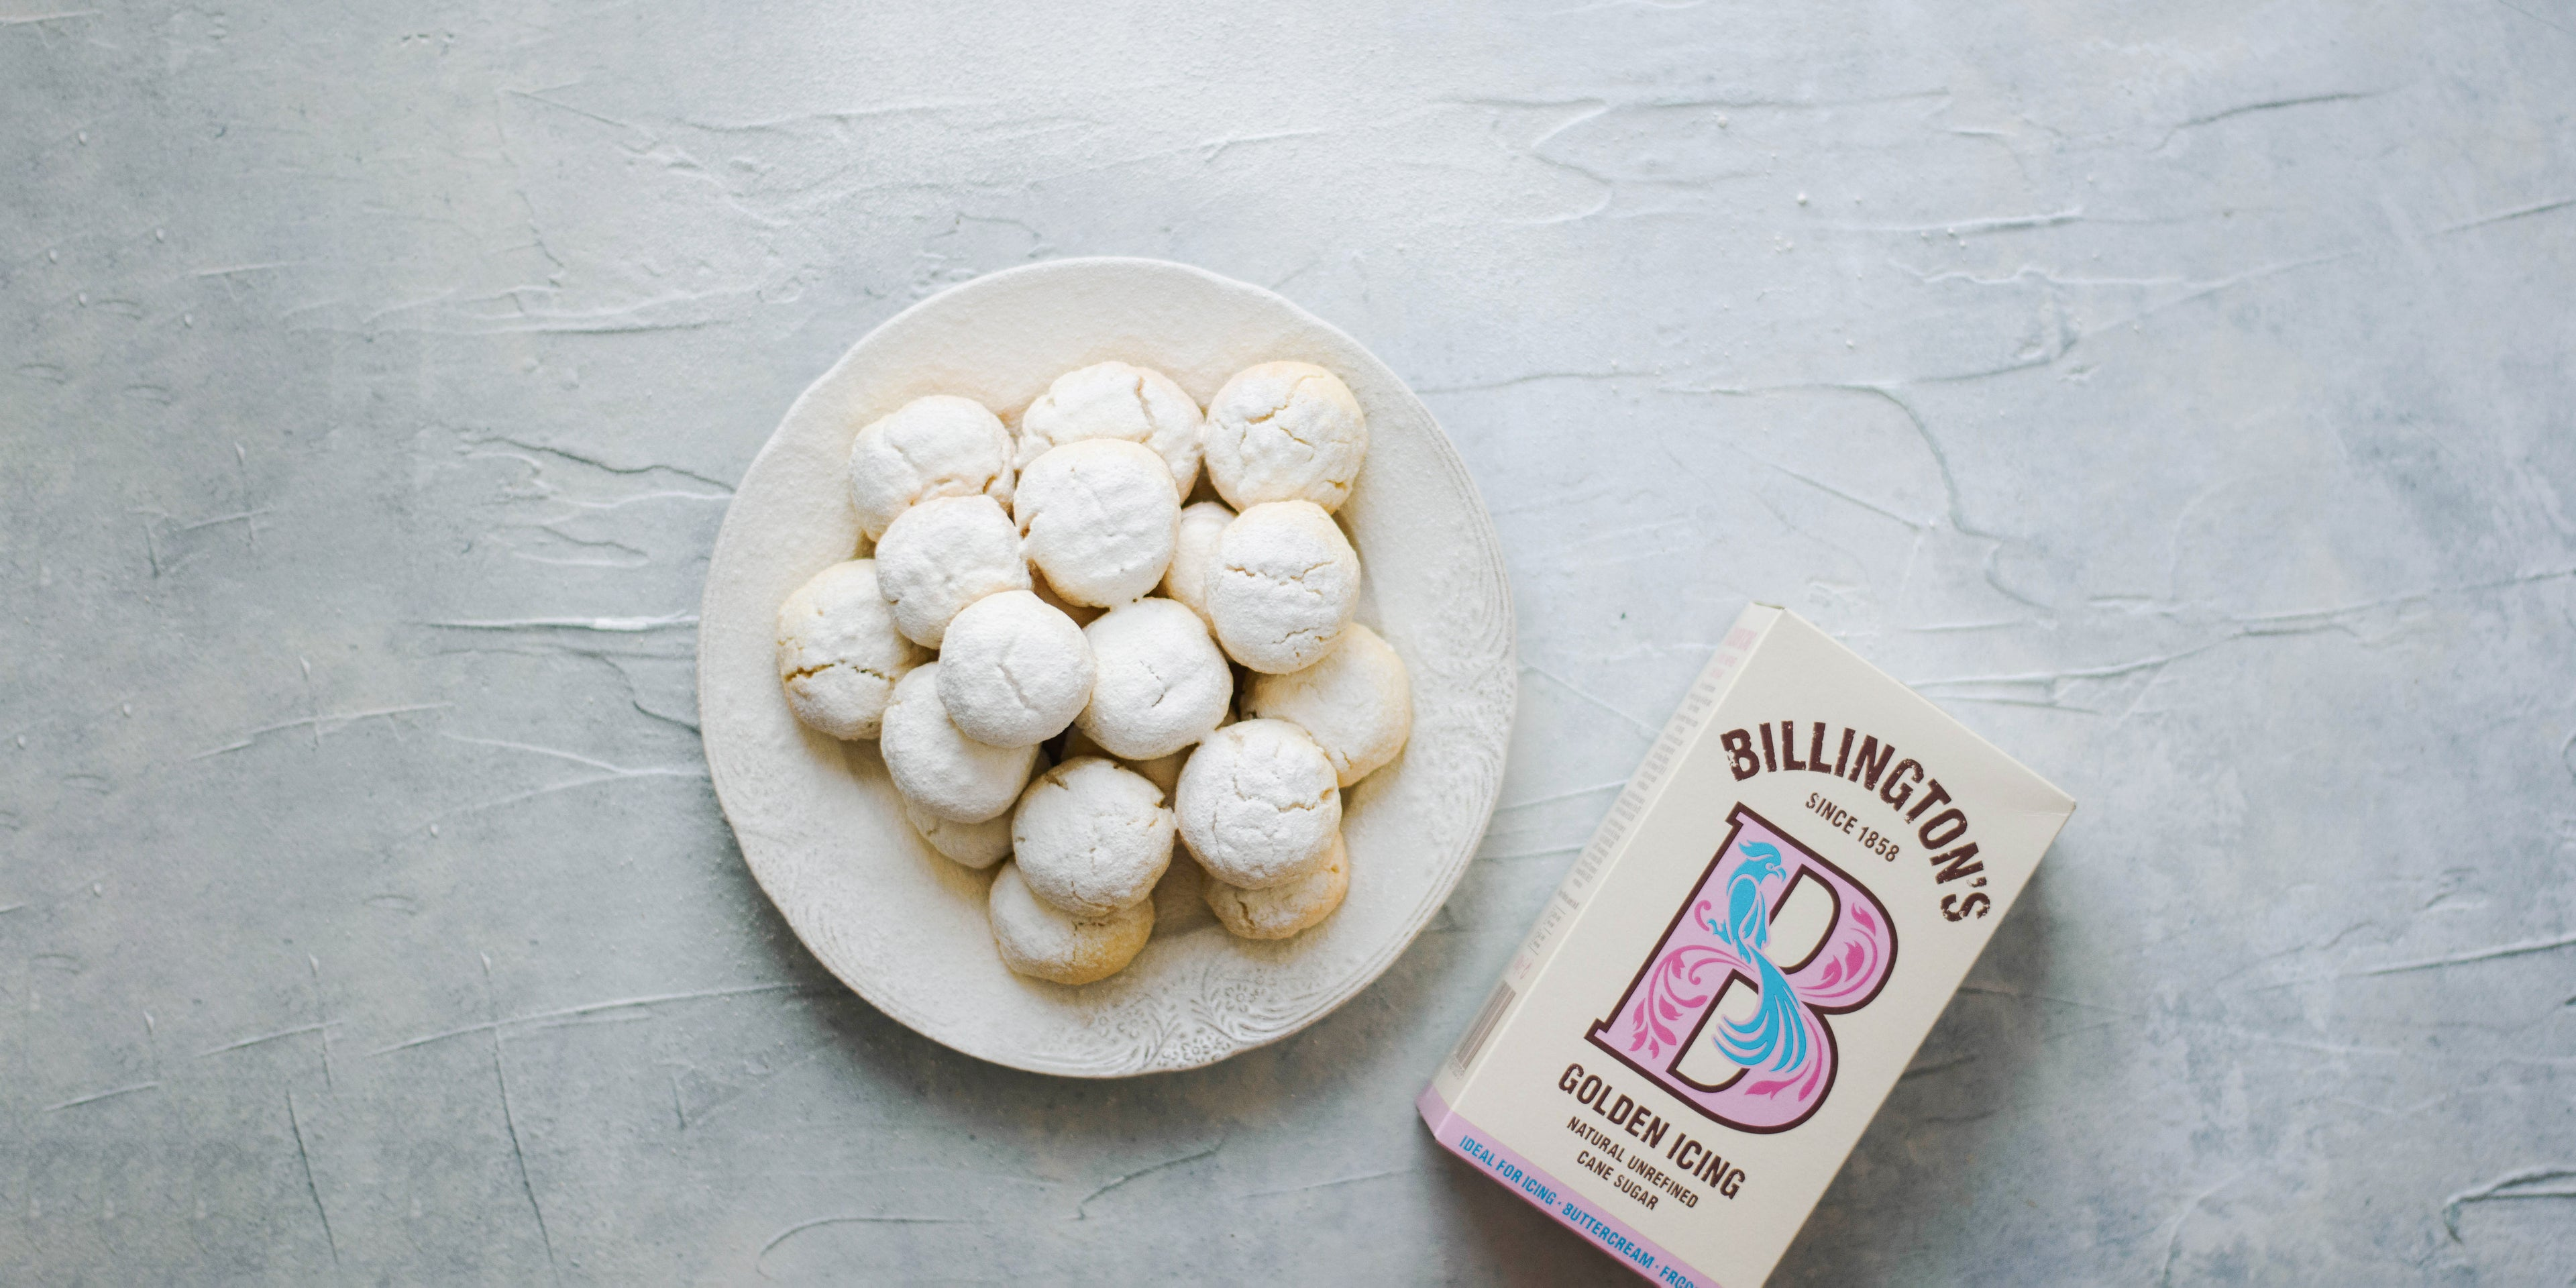 Kahk Eid dusted with golden icing sugar, next to a flat lay box of Billington's icing sugar